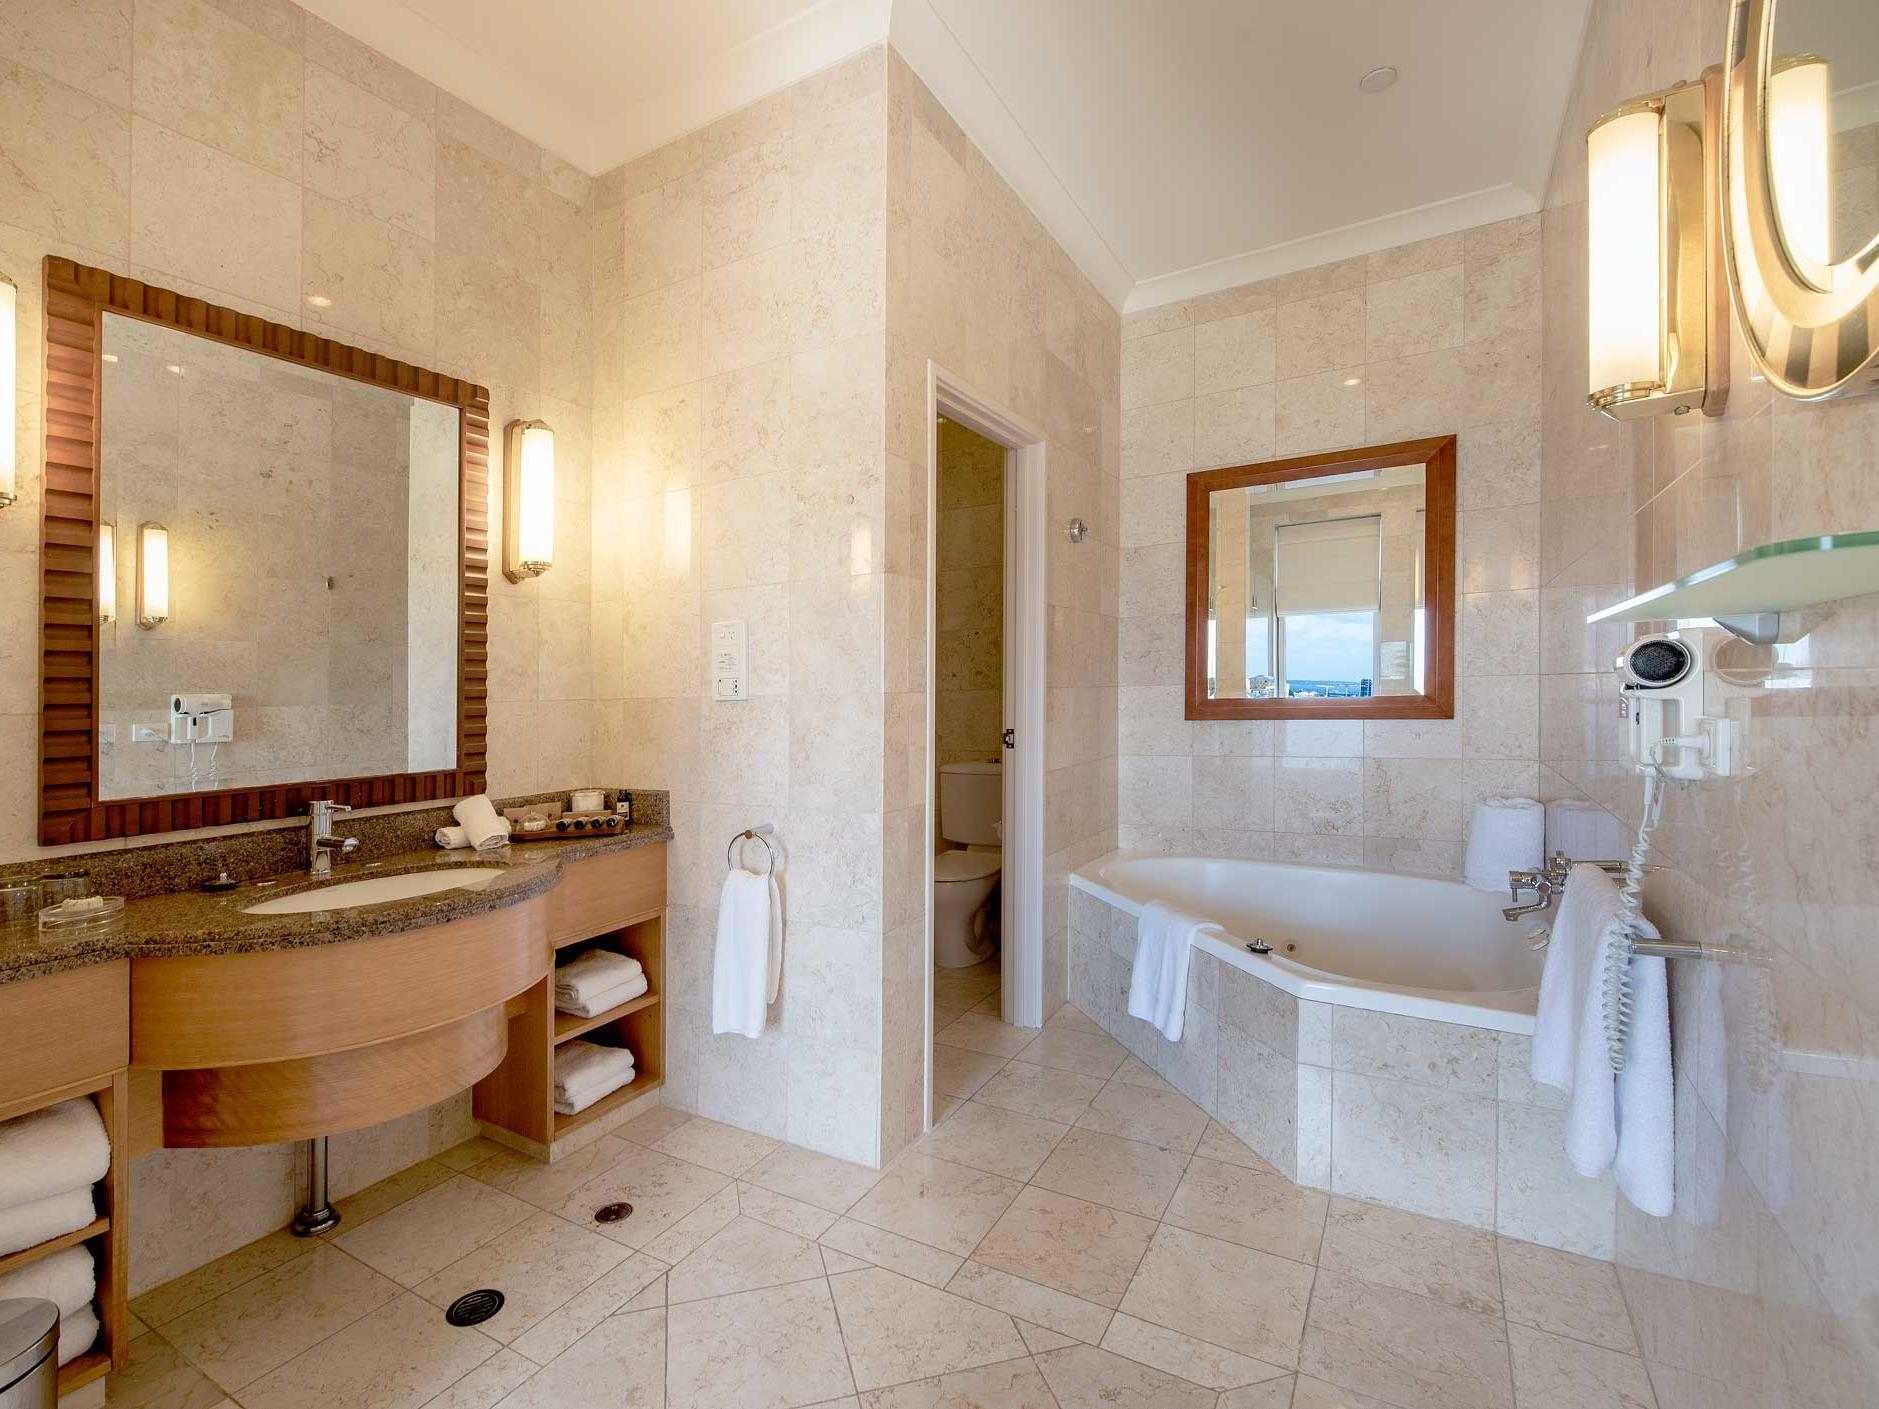 Bathroom of Presidential Suite at Duxton Hotel Perth